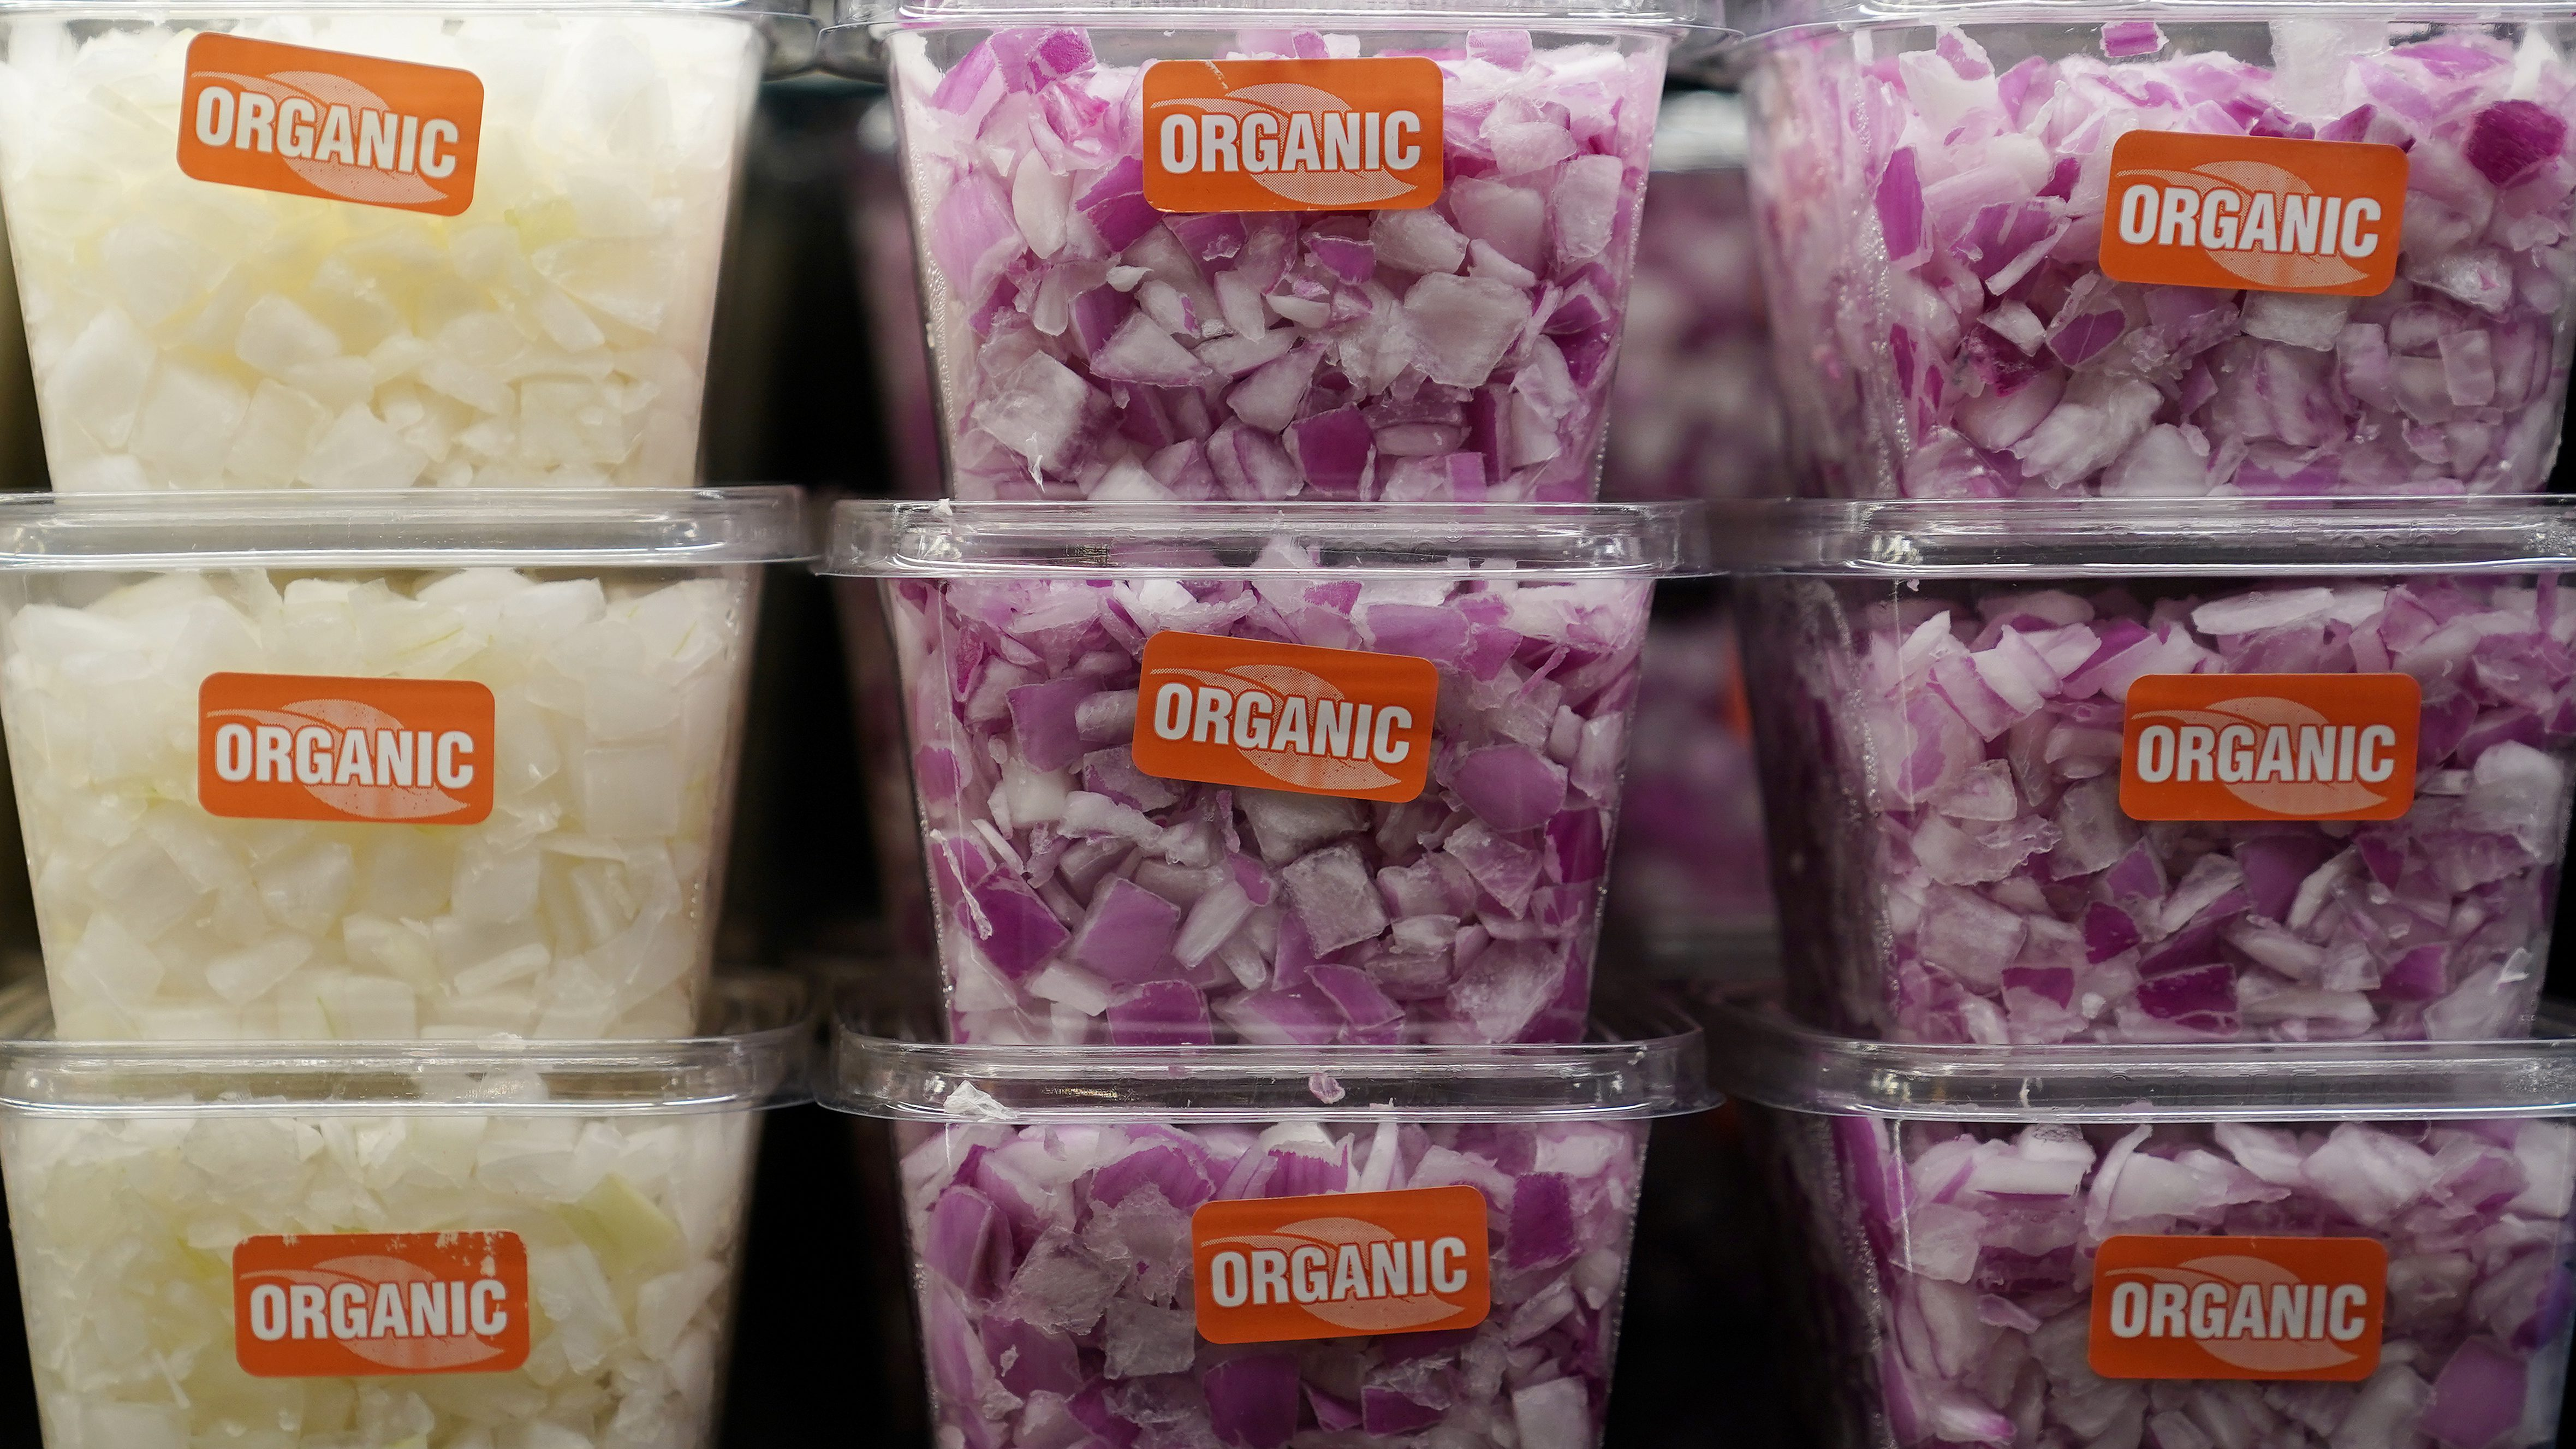 Chopped onions for sale are pictured inside a Whole Foods Market in the Manhattan borough of New York City, New York, U.S. June 16, 2017.